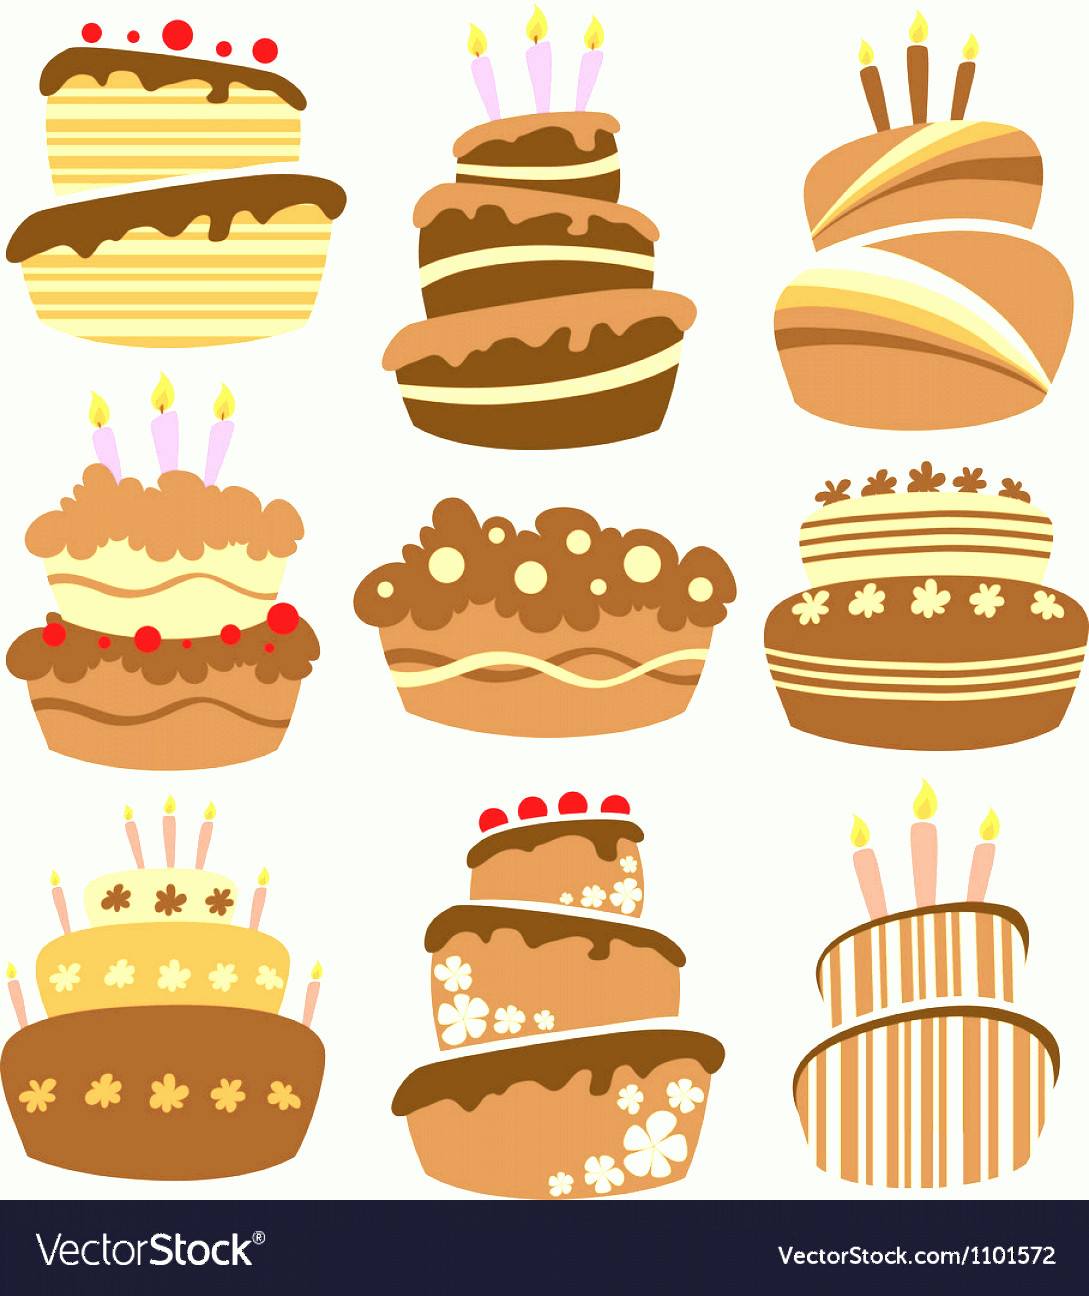 Vector Abstract Art Cake: Abstract Birthday Cake Set Vector